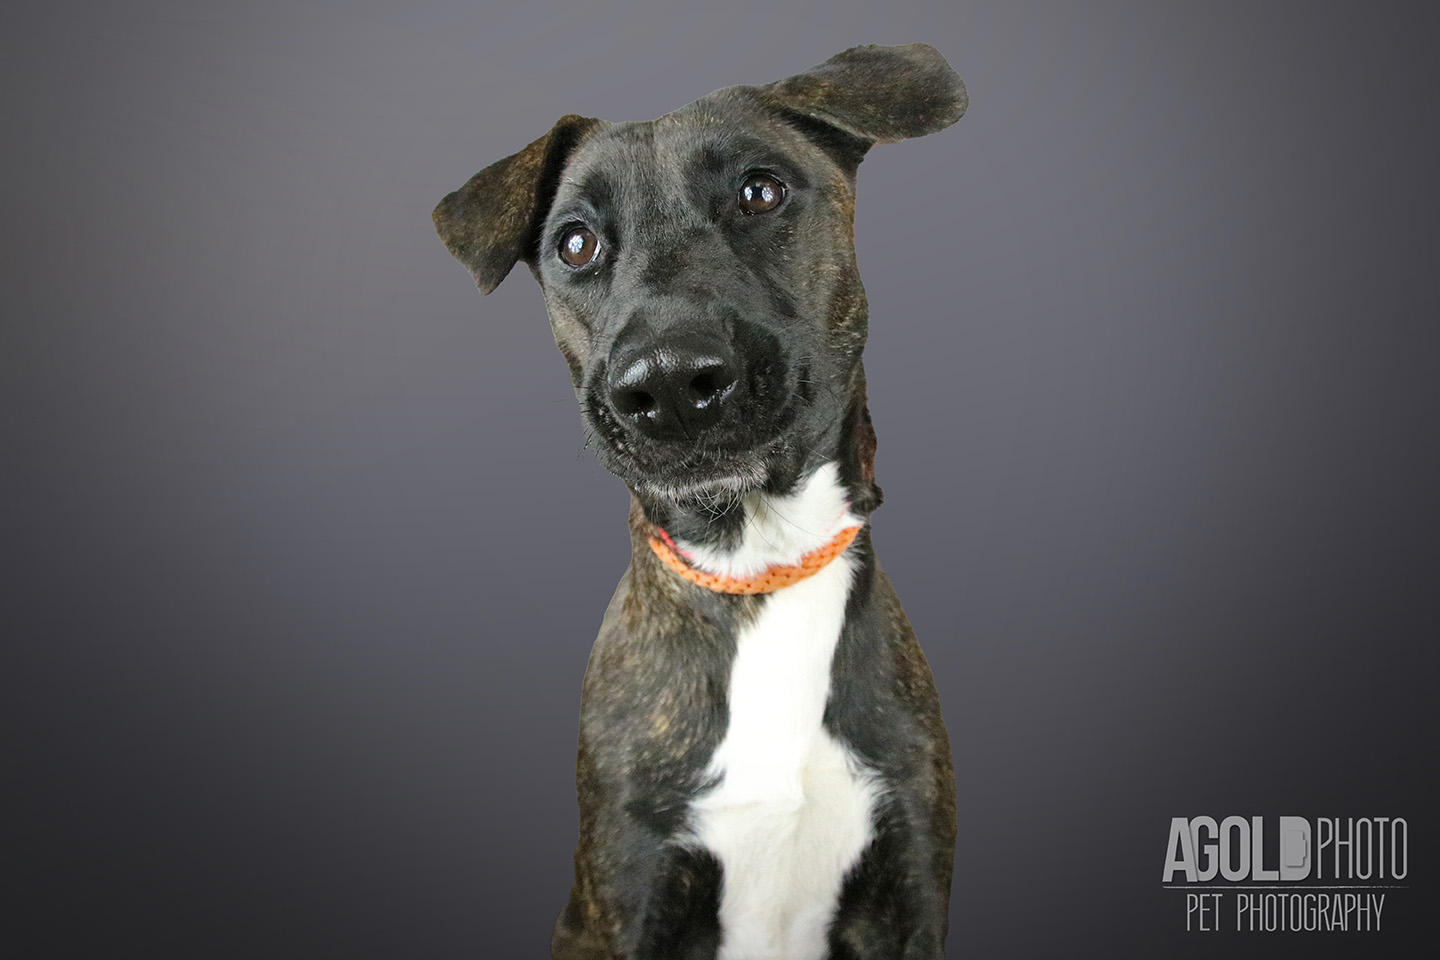 layla_agoldphoto-tampa-pet-photography__agoldphoto-tampa-pet-photography_